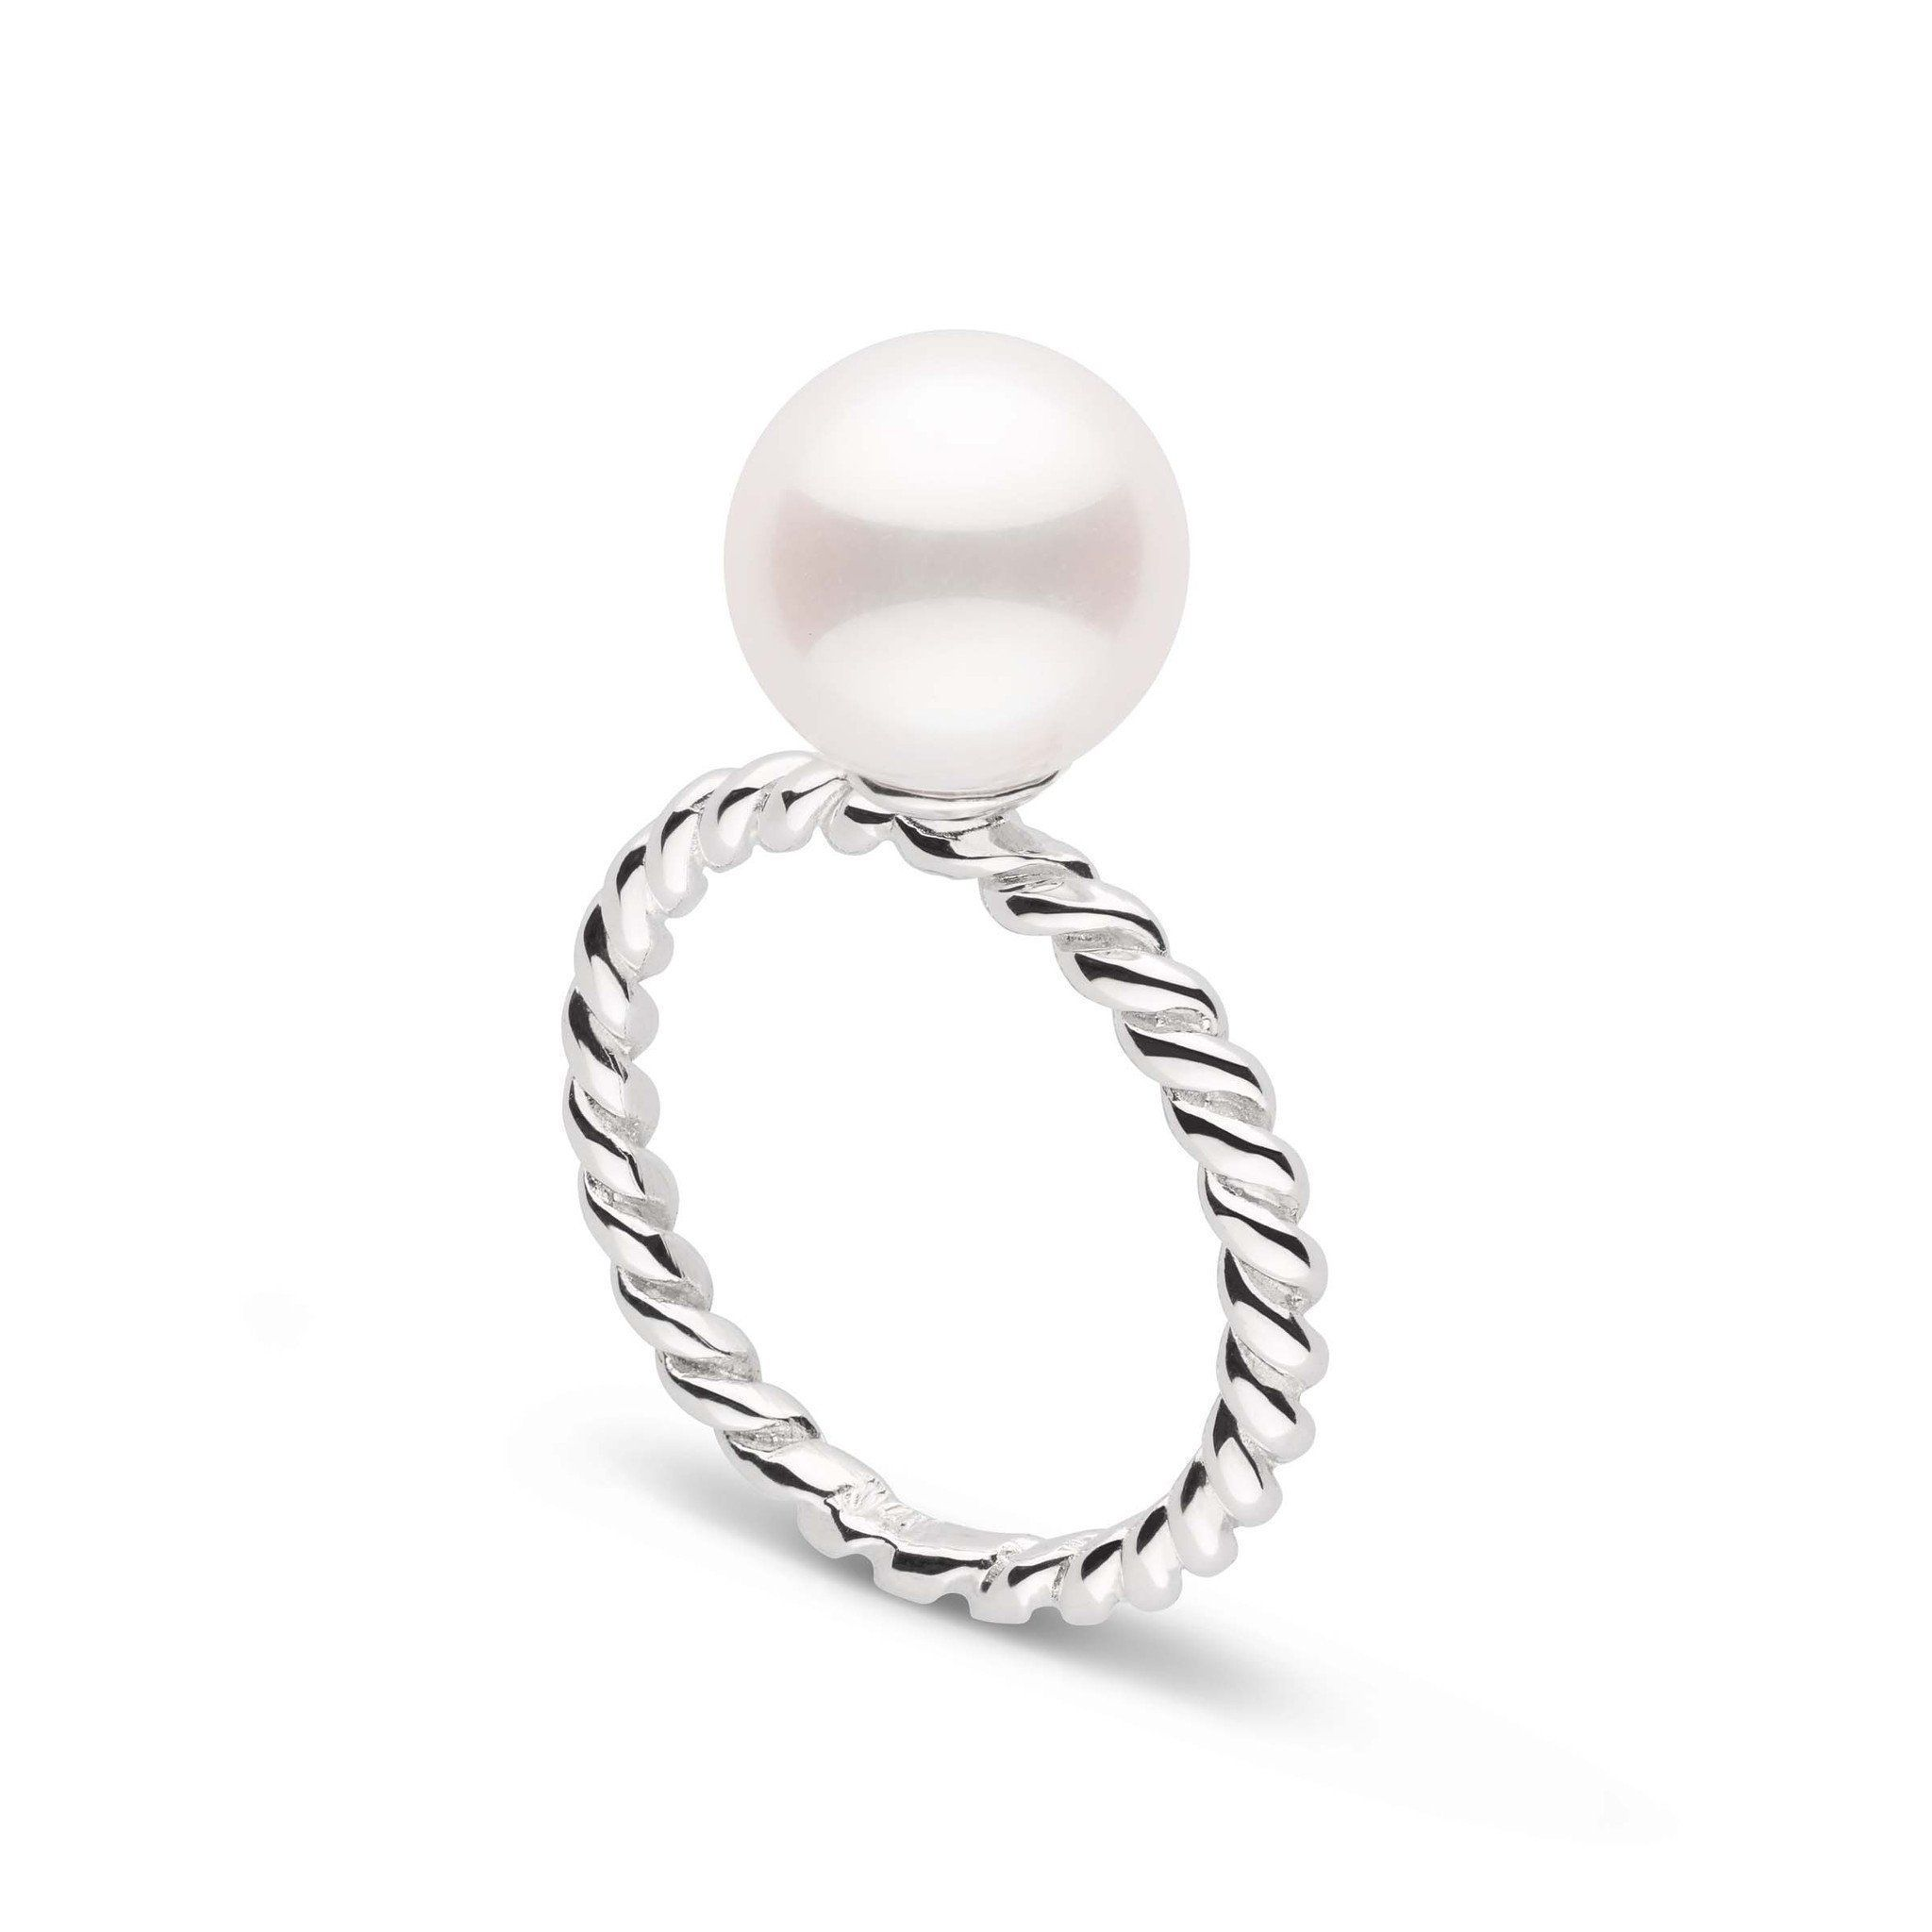 Twist Collection 9.0-10.0 mm Freshadama Pearl Ring